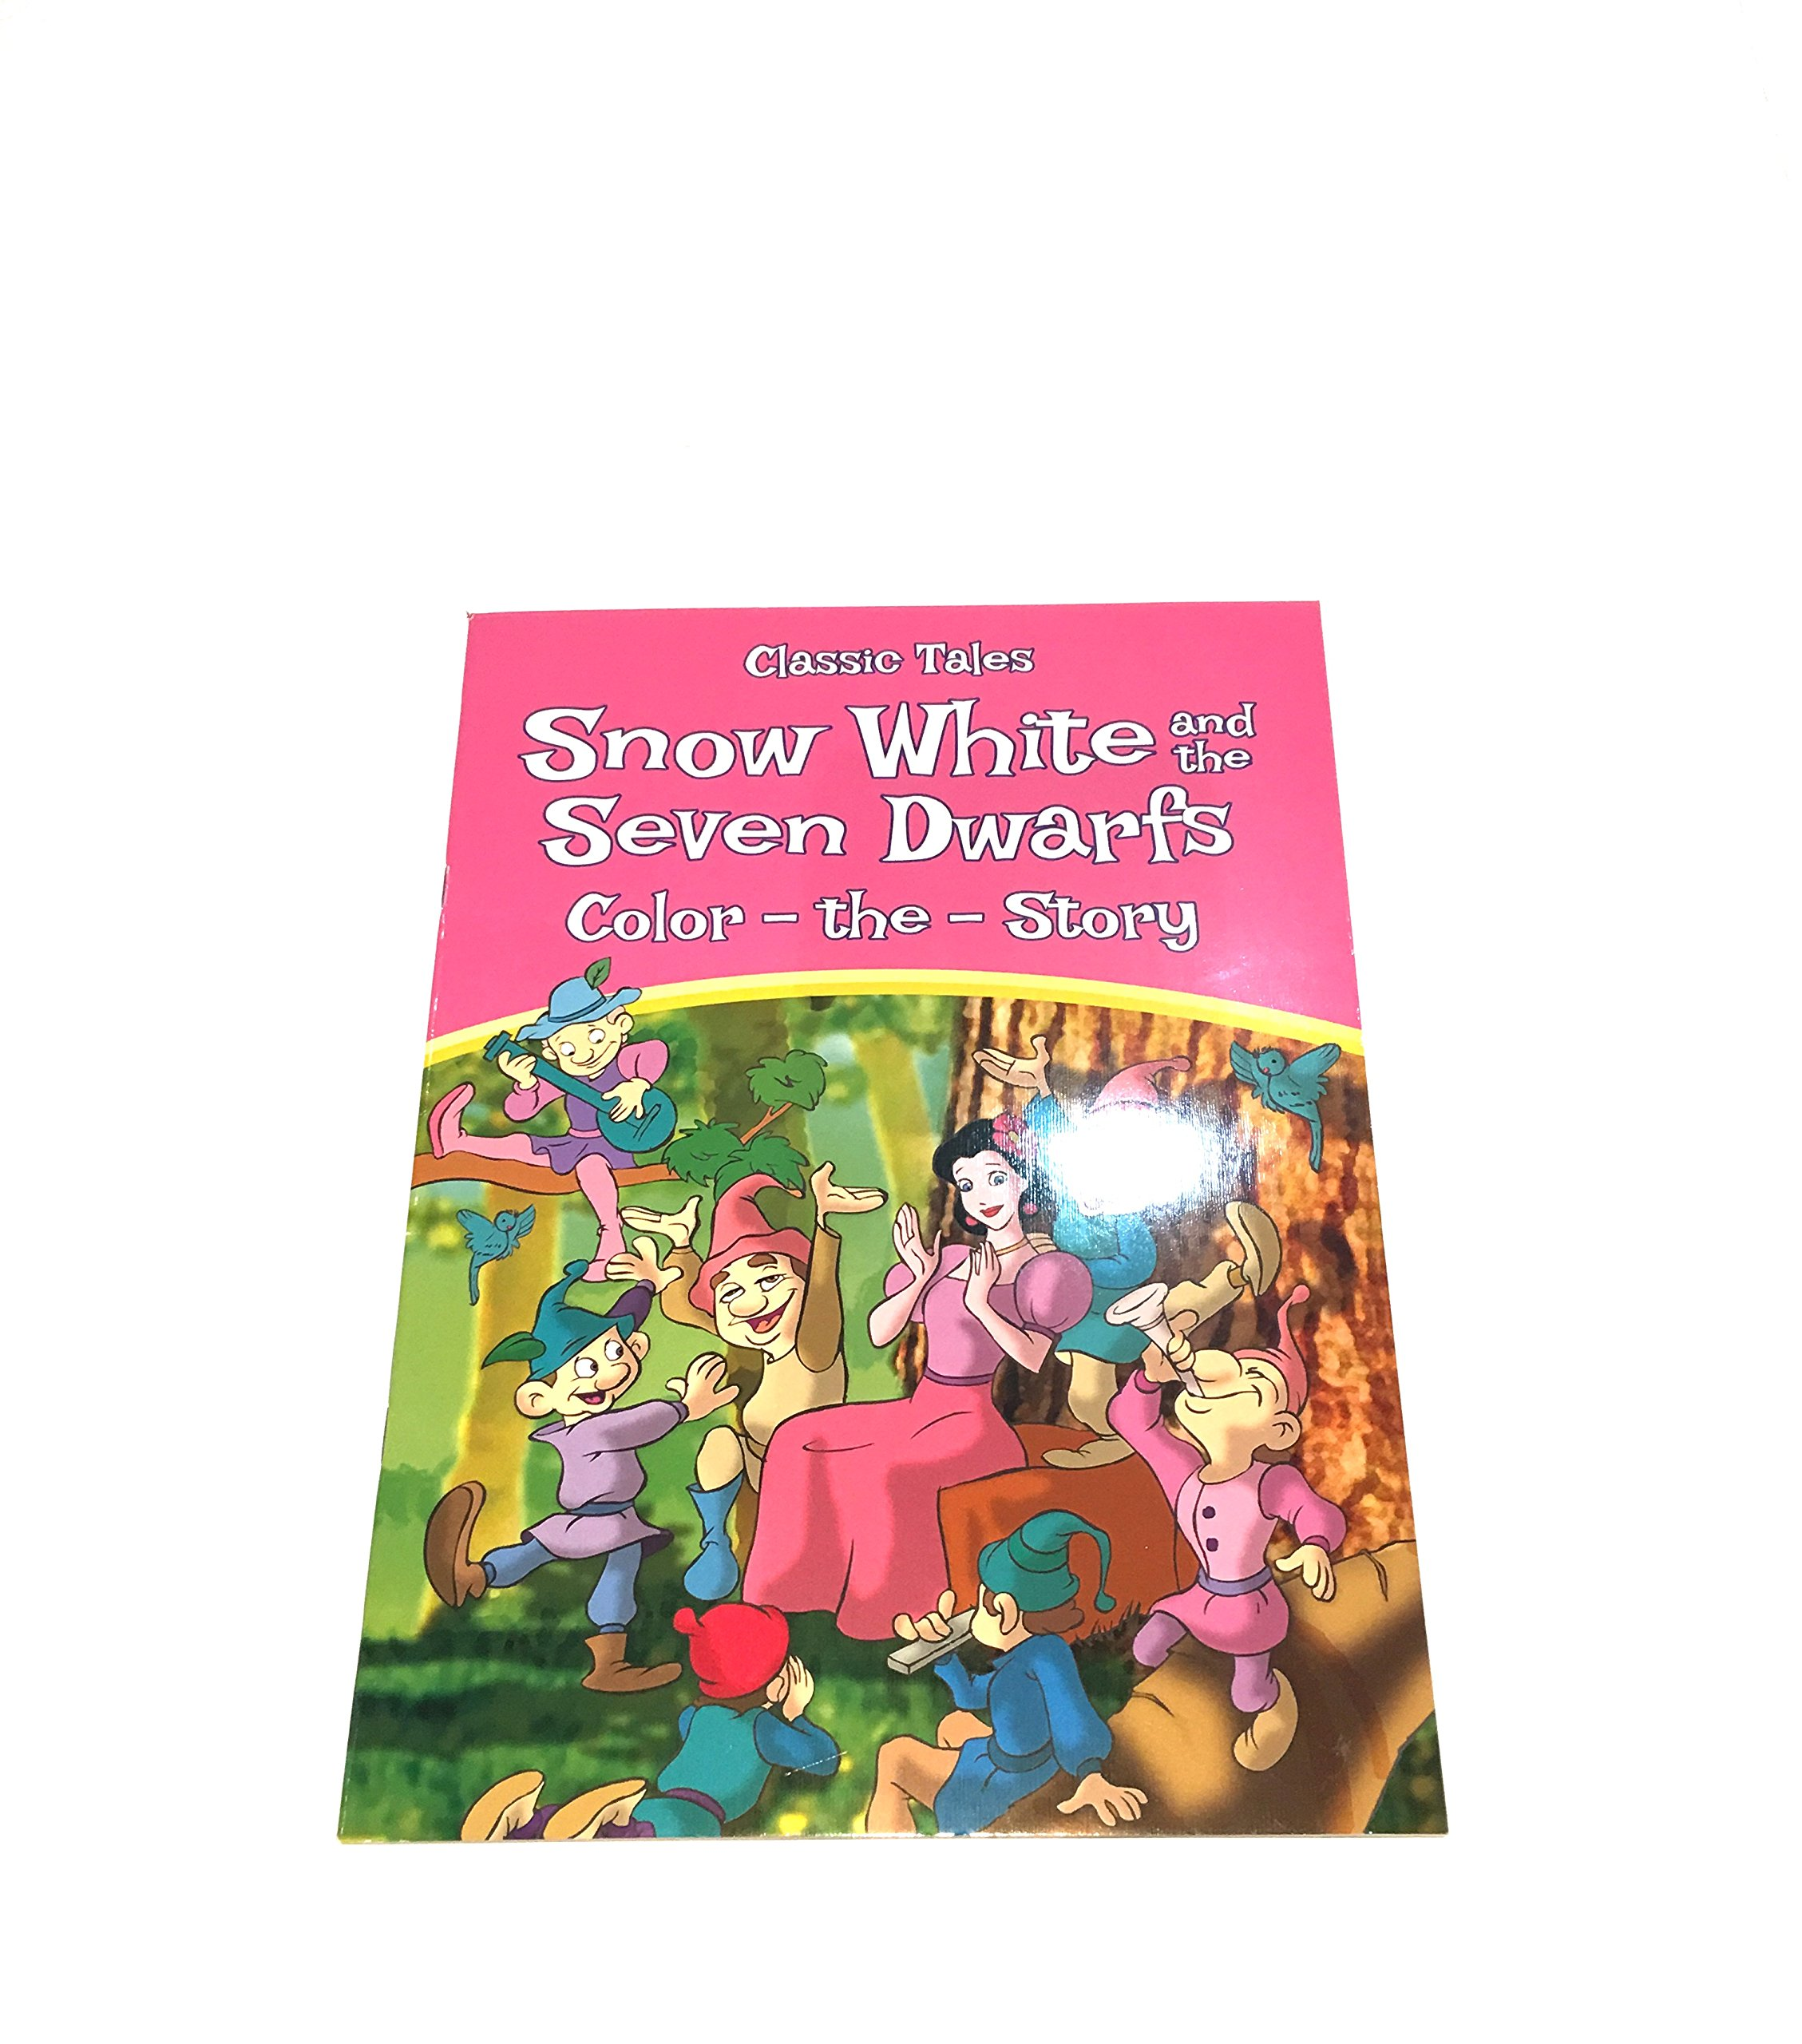 Classic Tales Snow White and the Seven Dwarfs Color the Story pdf